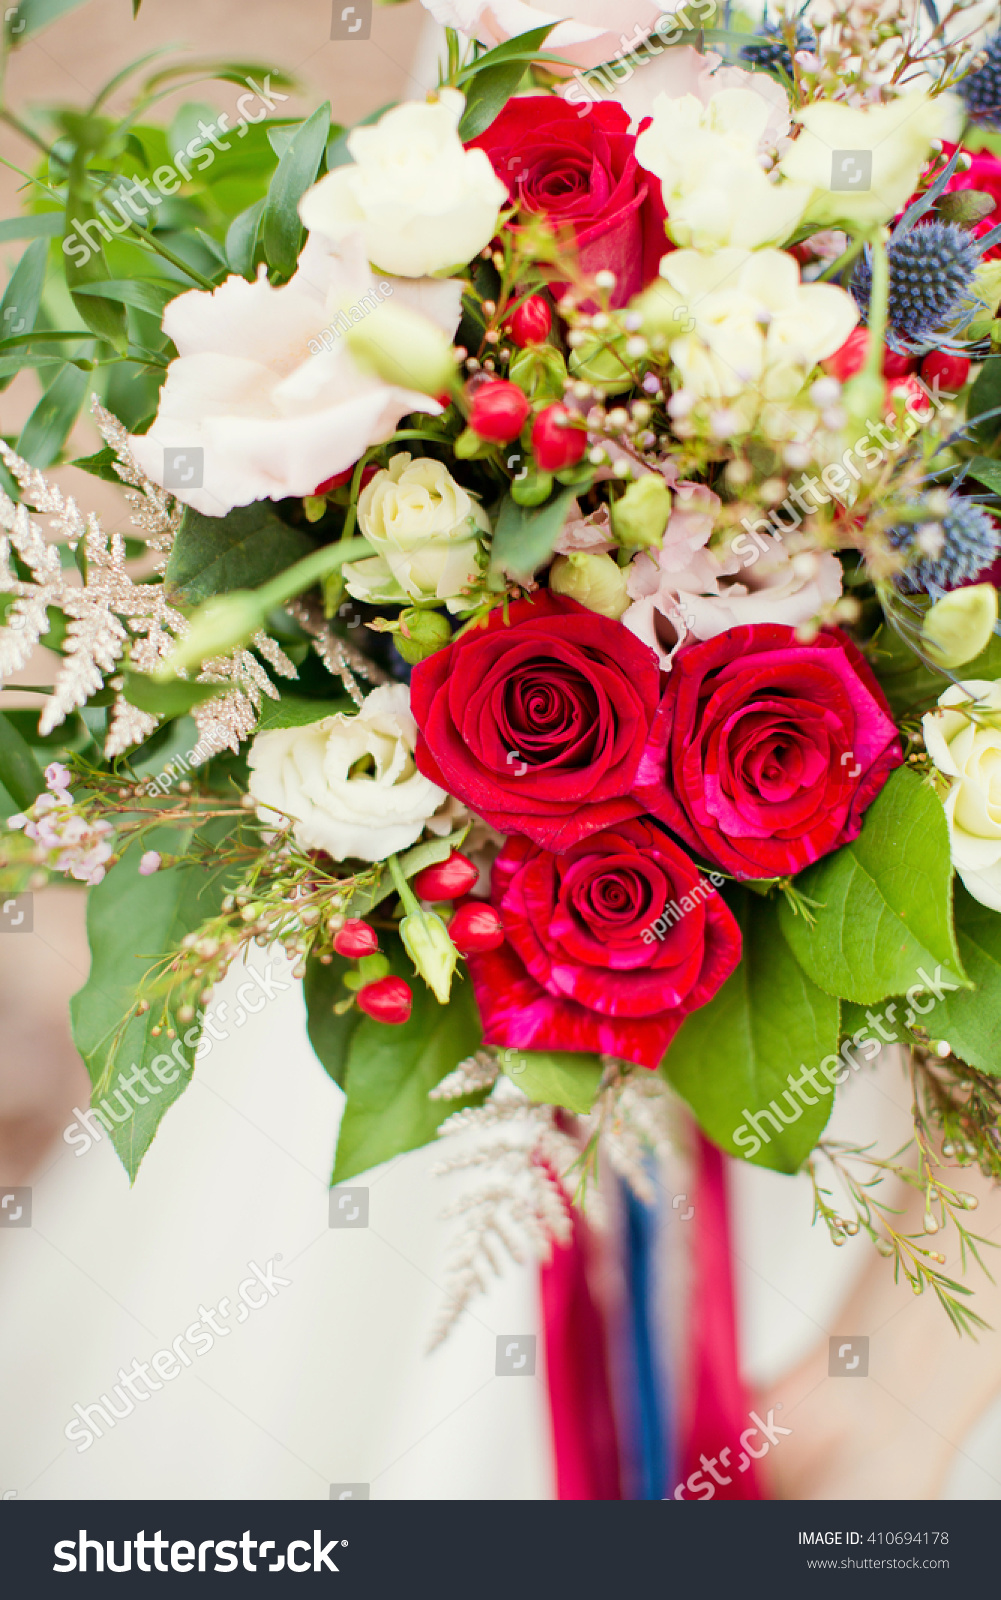 Wedding boho bouquet red white blue stock photo royalty free wedding boho bouquet with red white and blue flowers izmirmasajfo Gallery